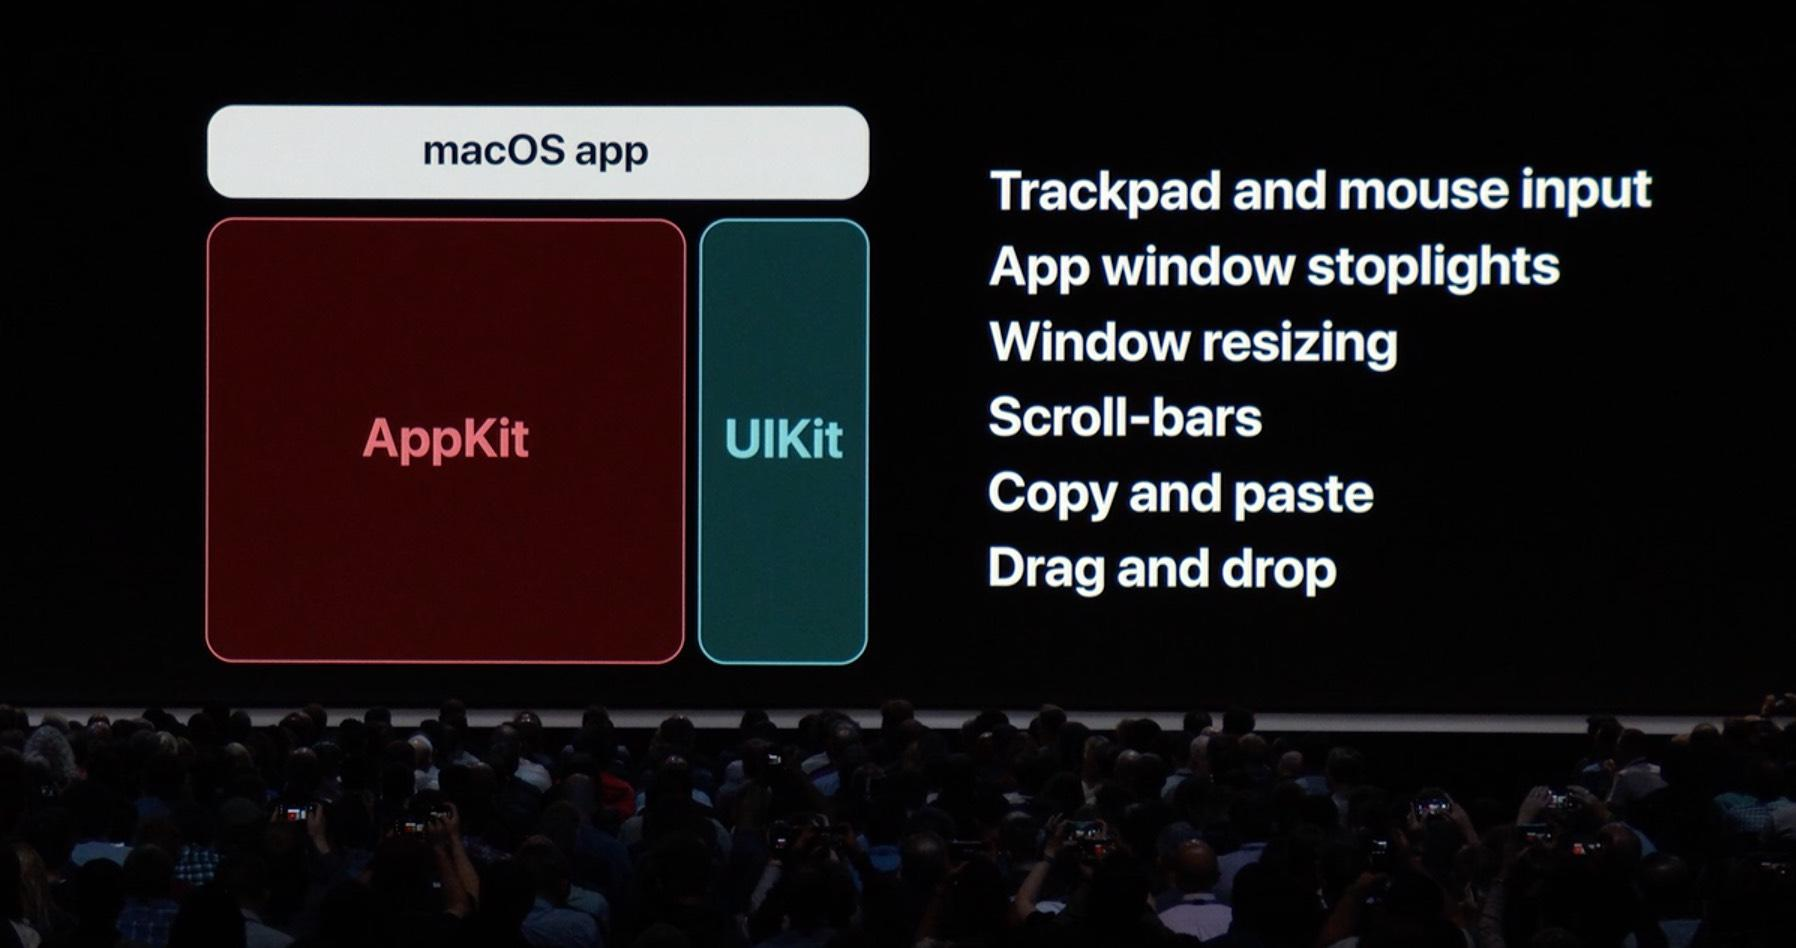 AppKit and UIKit for MacOS apps